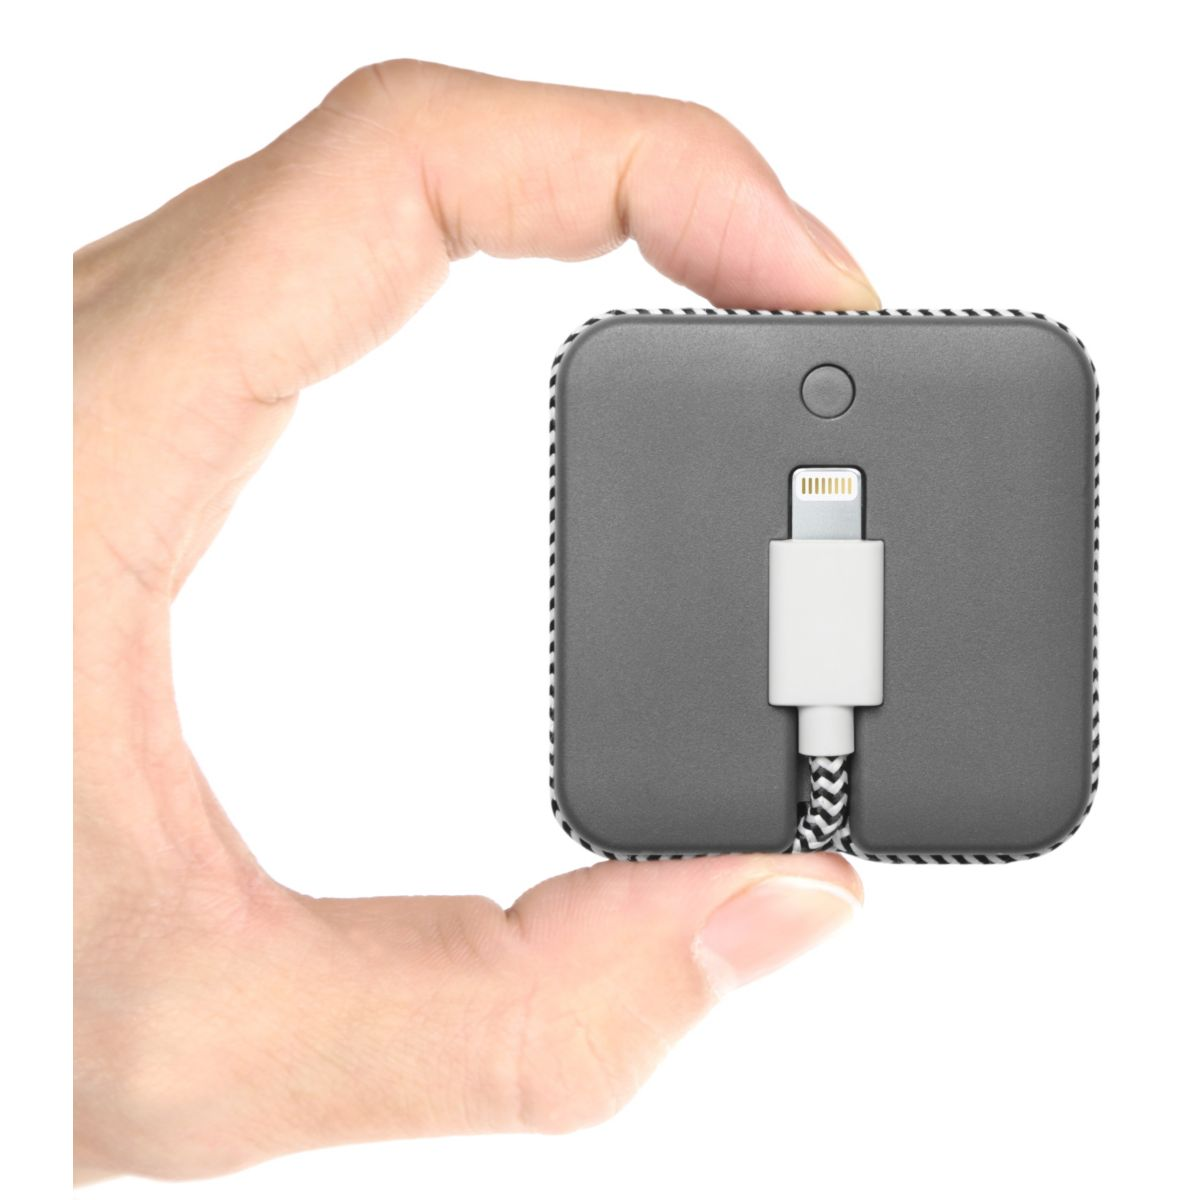 Câble lightning native union jump + charge zebra - 20% de remise immédiate avec le code : multi20 (photo)